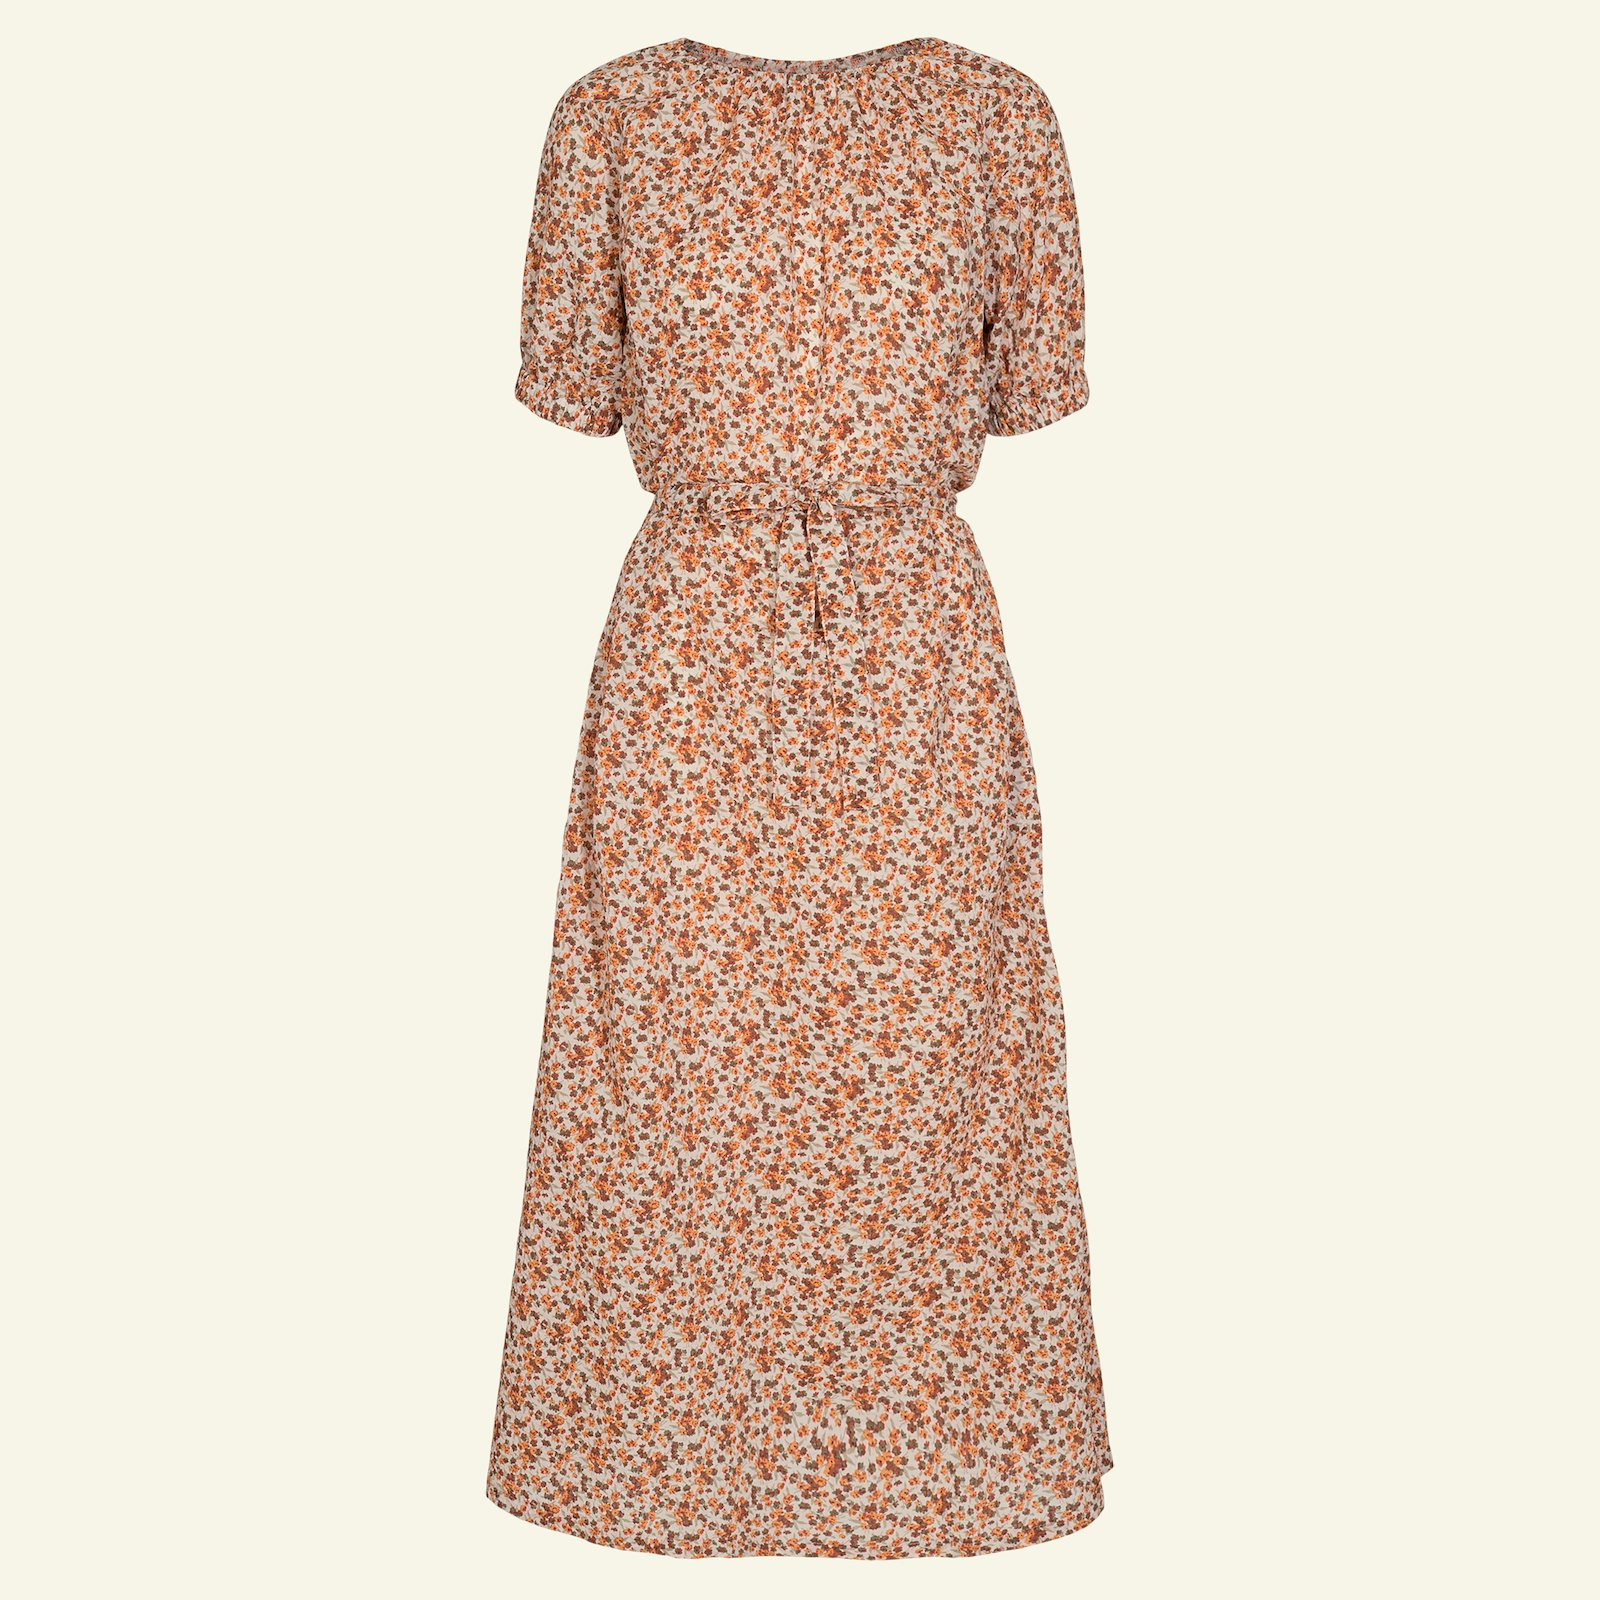 Dress with belt and blouse, 44/16 p23167_580052_sskit